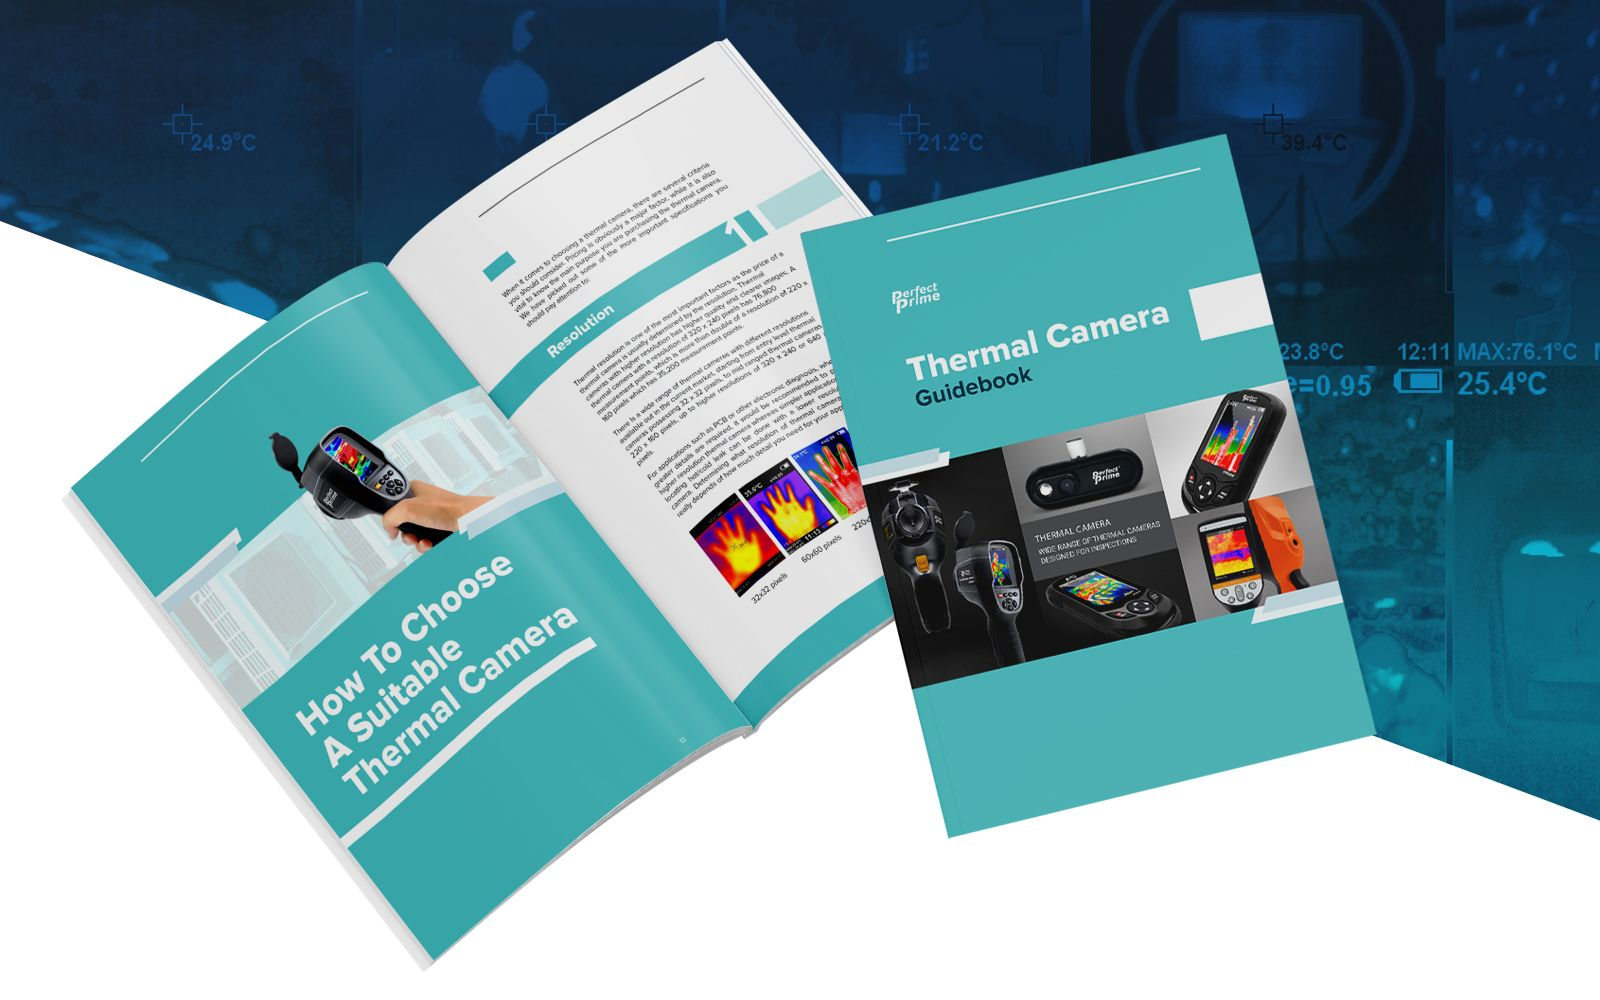 Thermal Imaging Camera guidebook